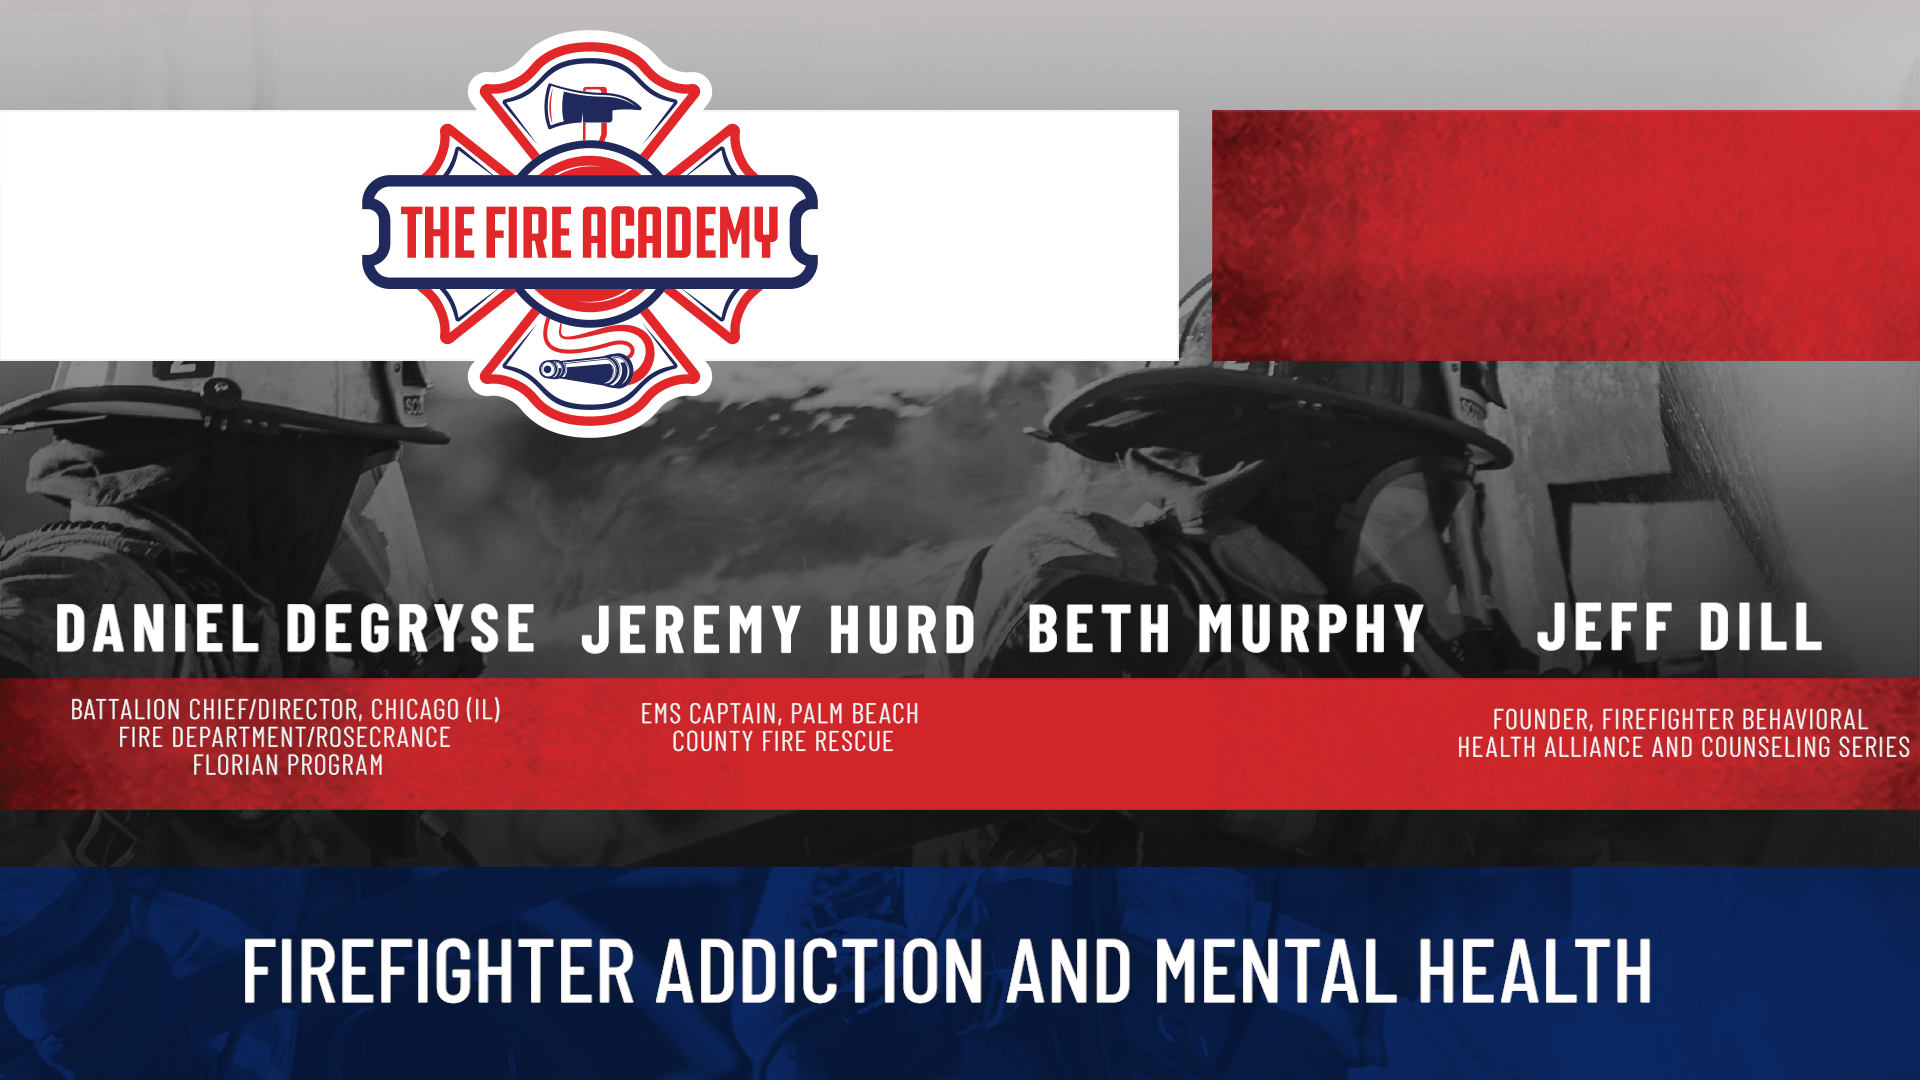 Firefighter Addiction and Mental Health